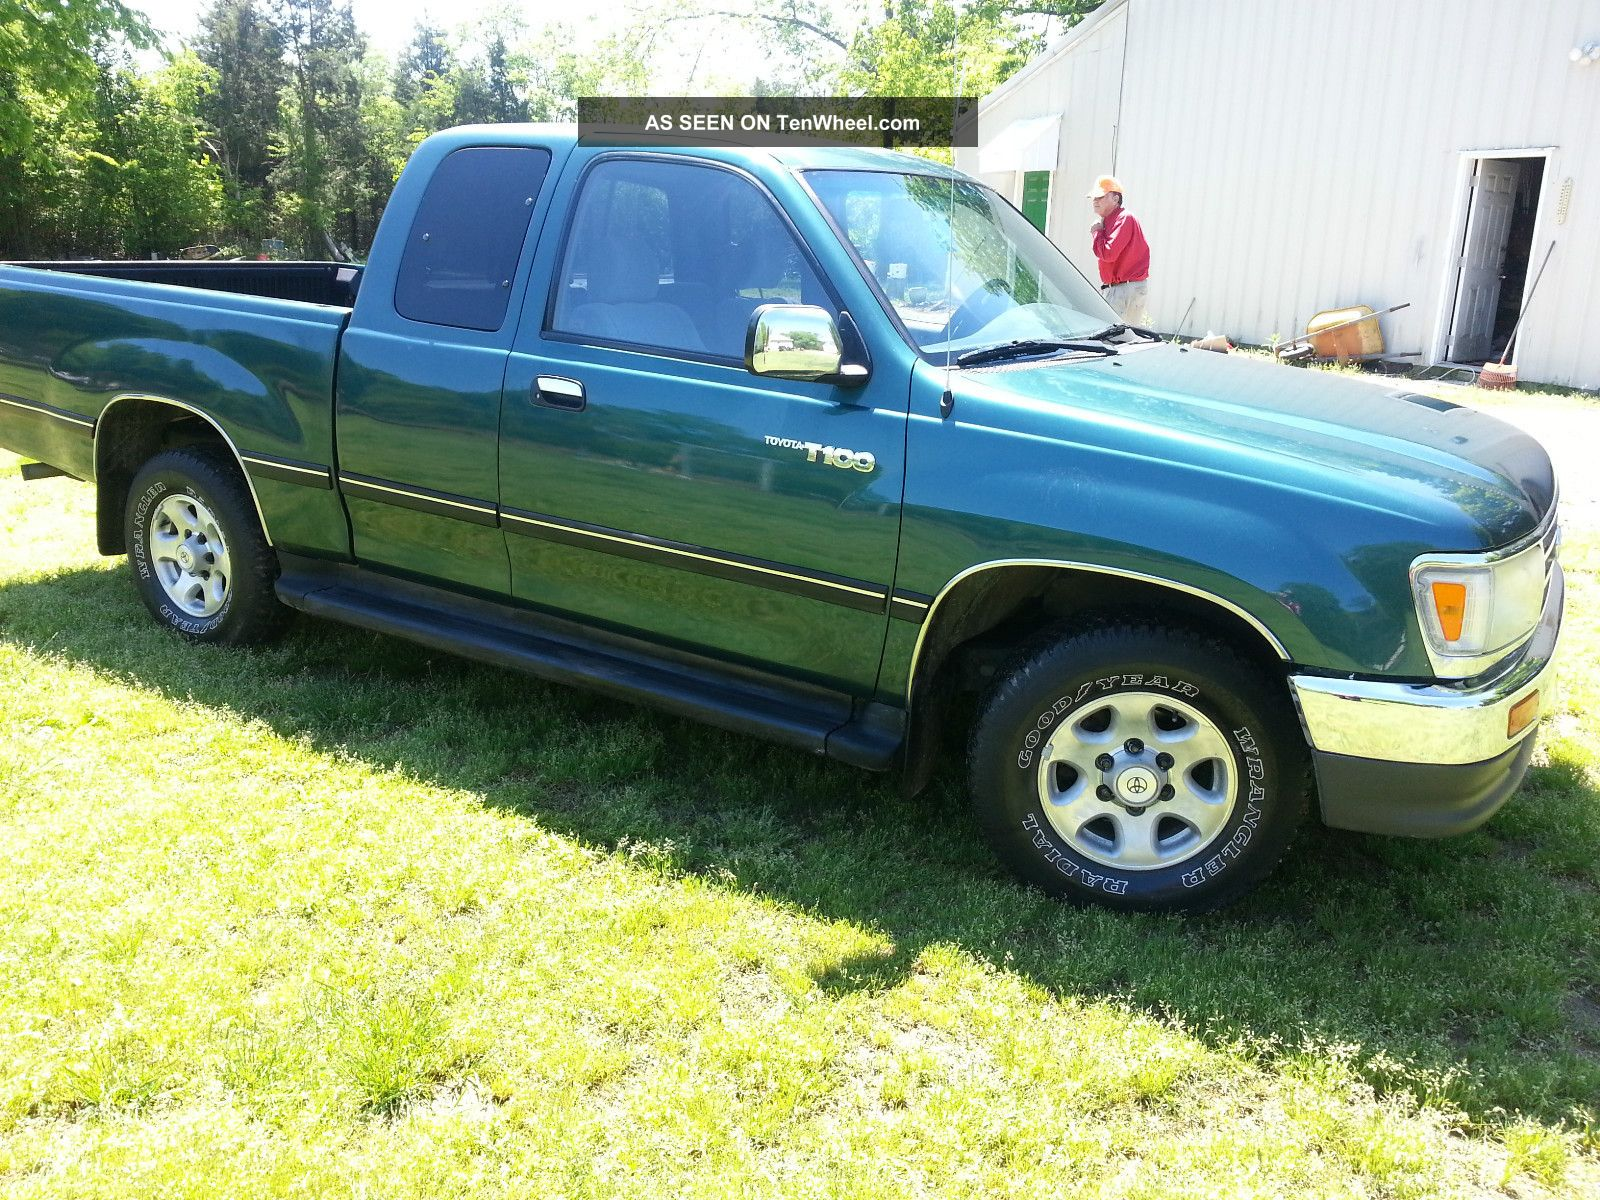 1998 Toyota T100 Information And Photos Zomb Drive